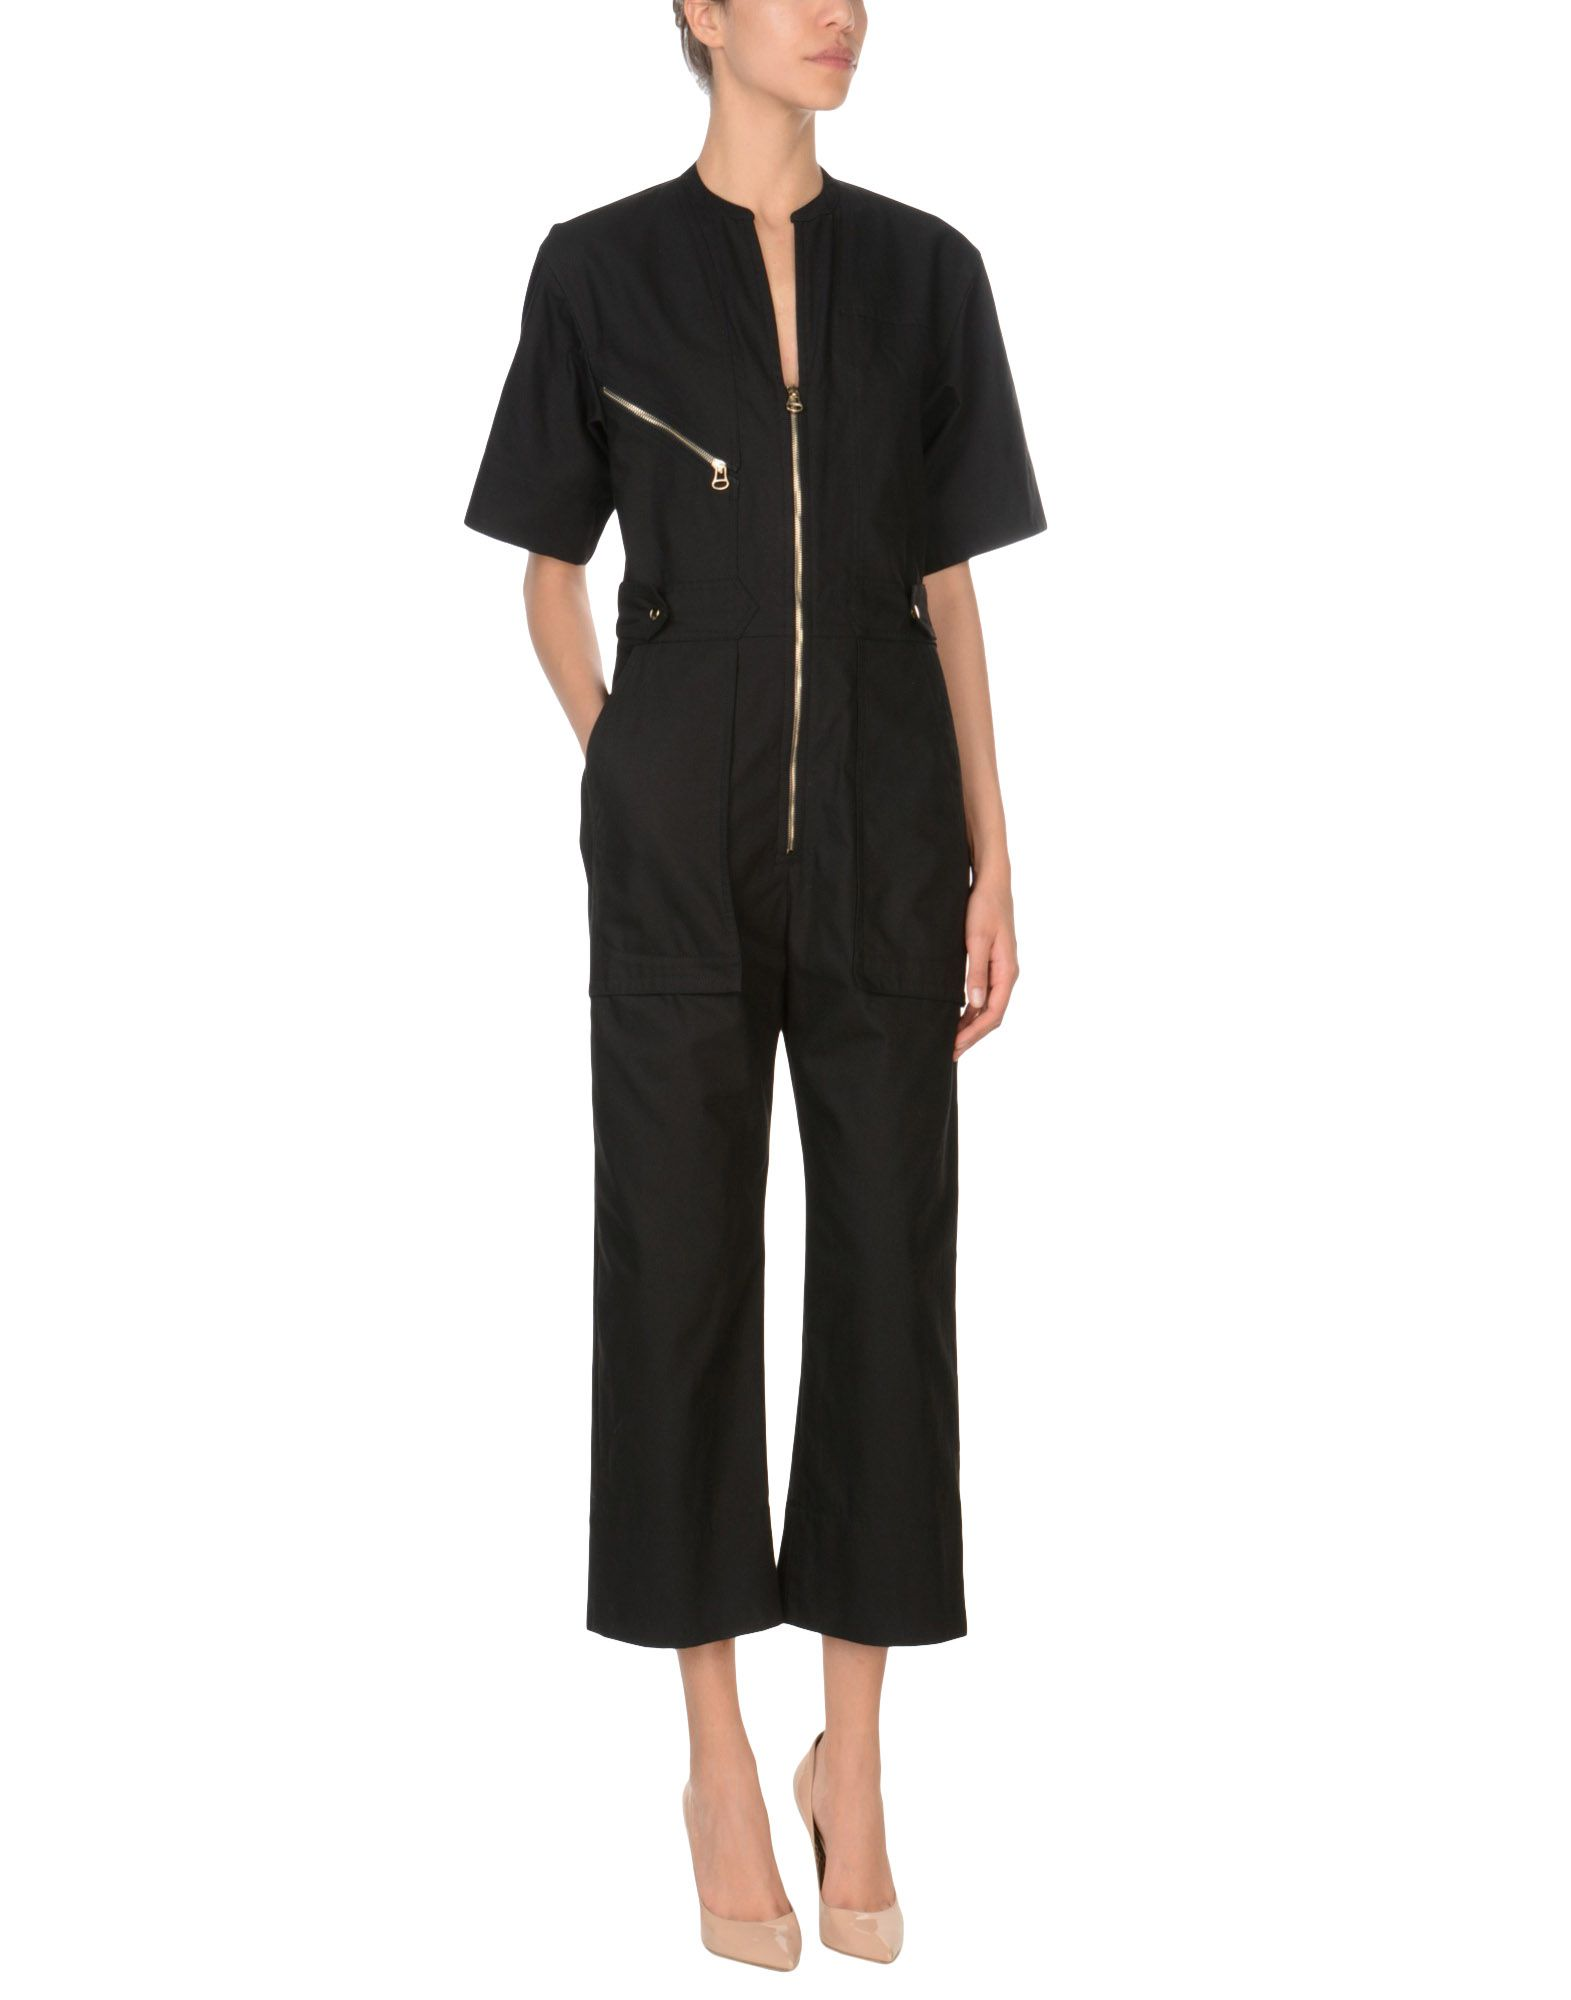 ISABEL MARANT Jumpsuits. Plain weave No appliqués Basic solid color V-neck Short sleeves Multipockets Zip Front closure Large sized. 100% Cotton